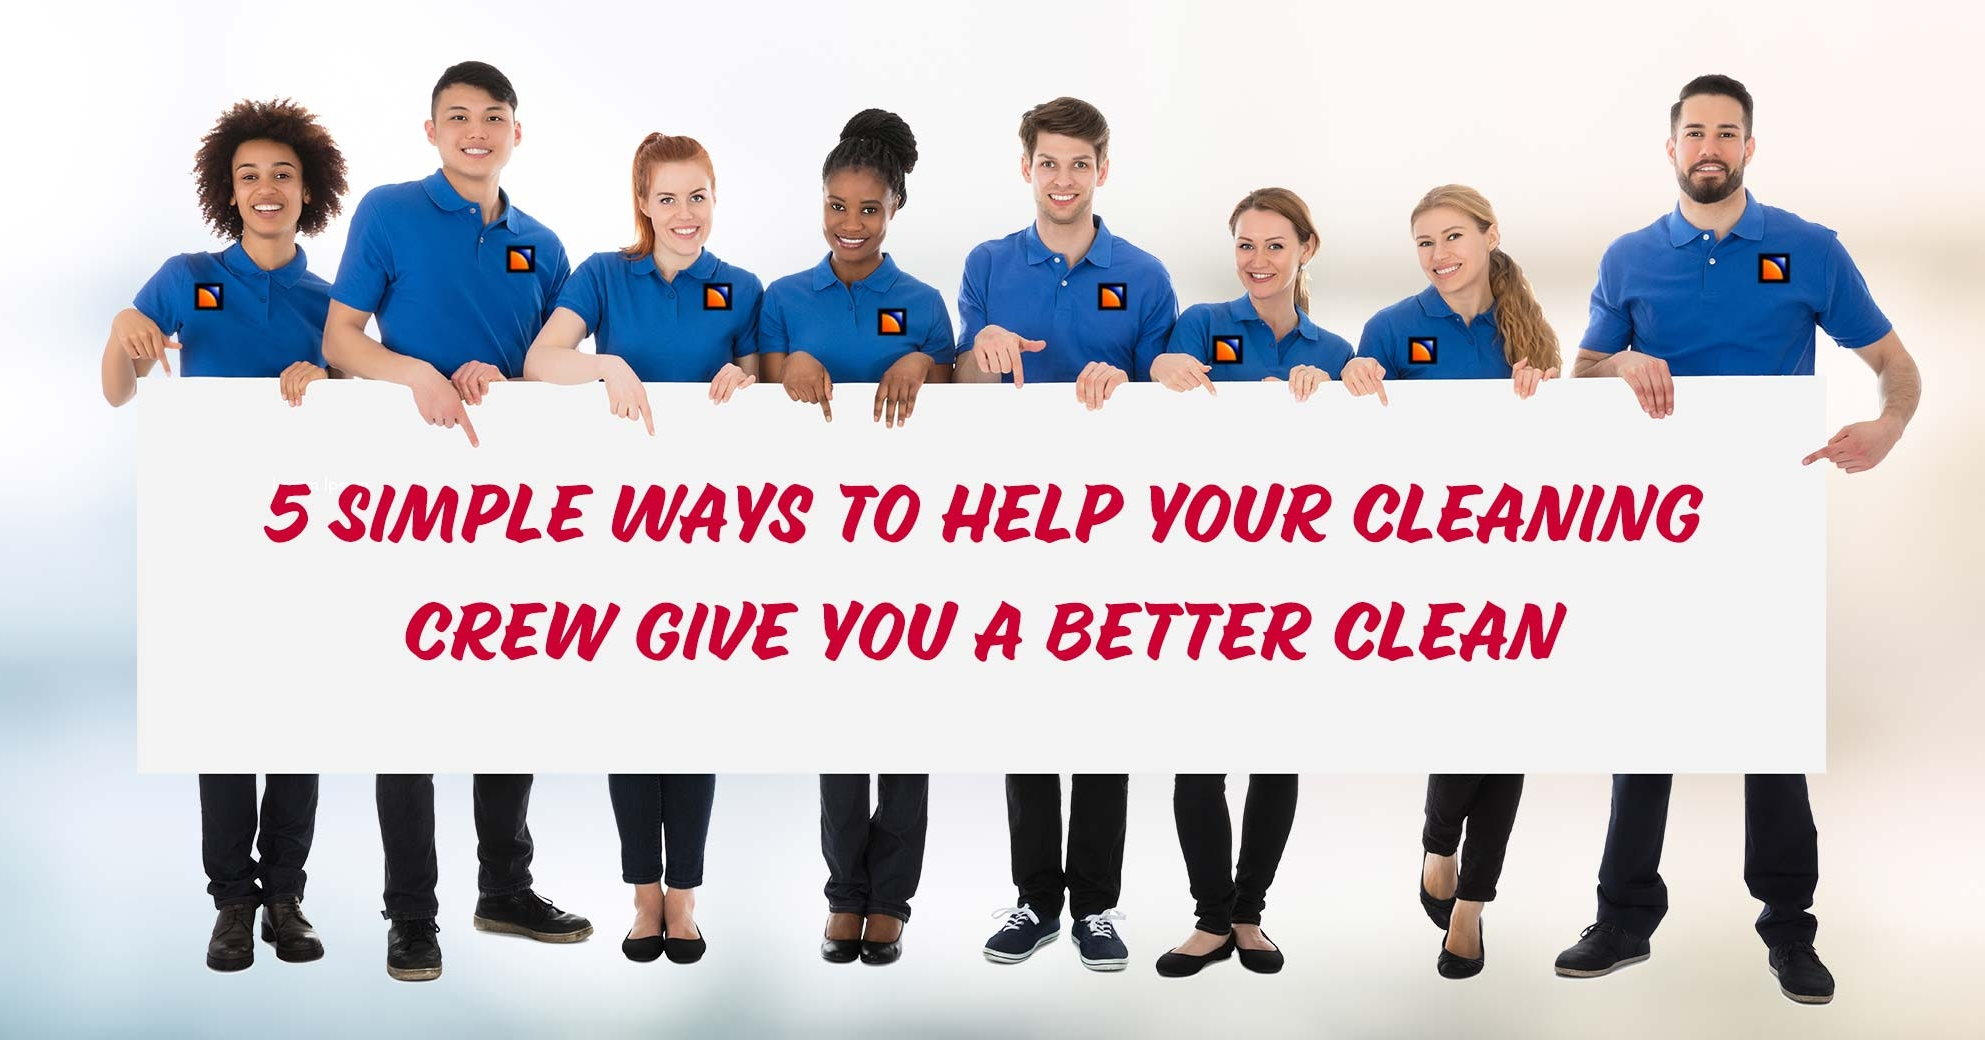 5 easy ways to prepare for your cleaning crew